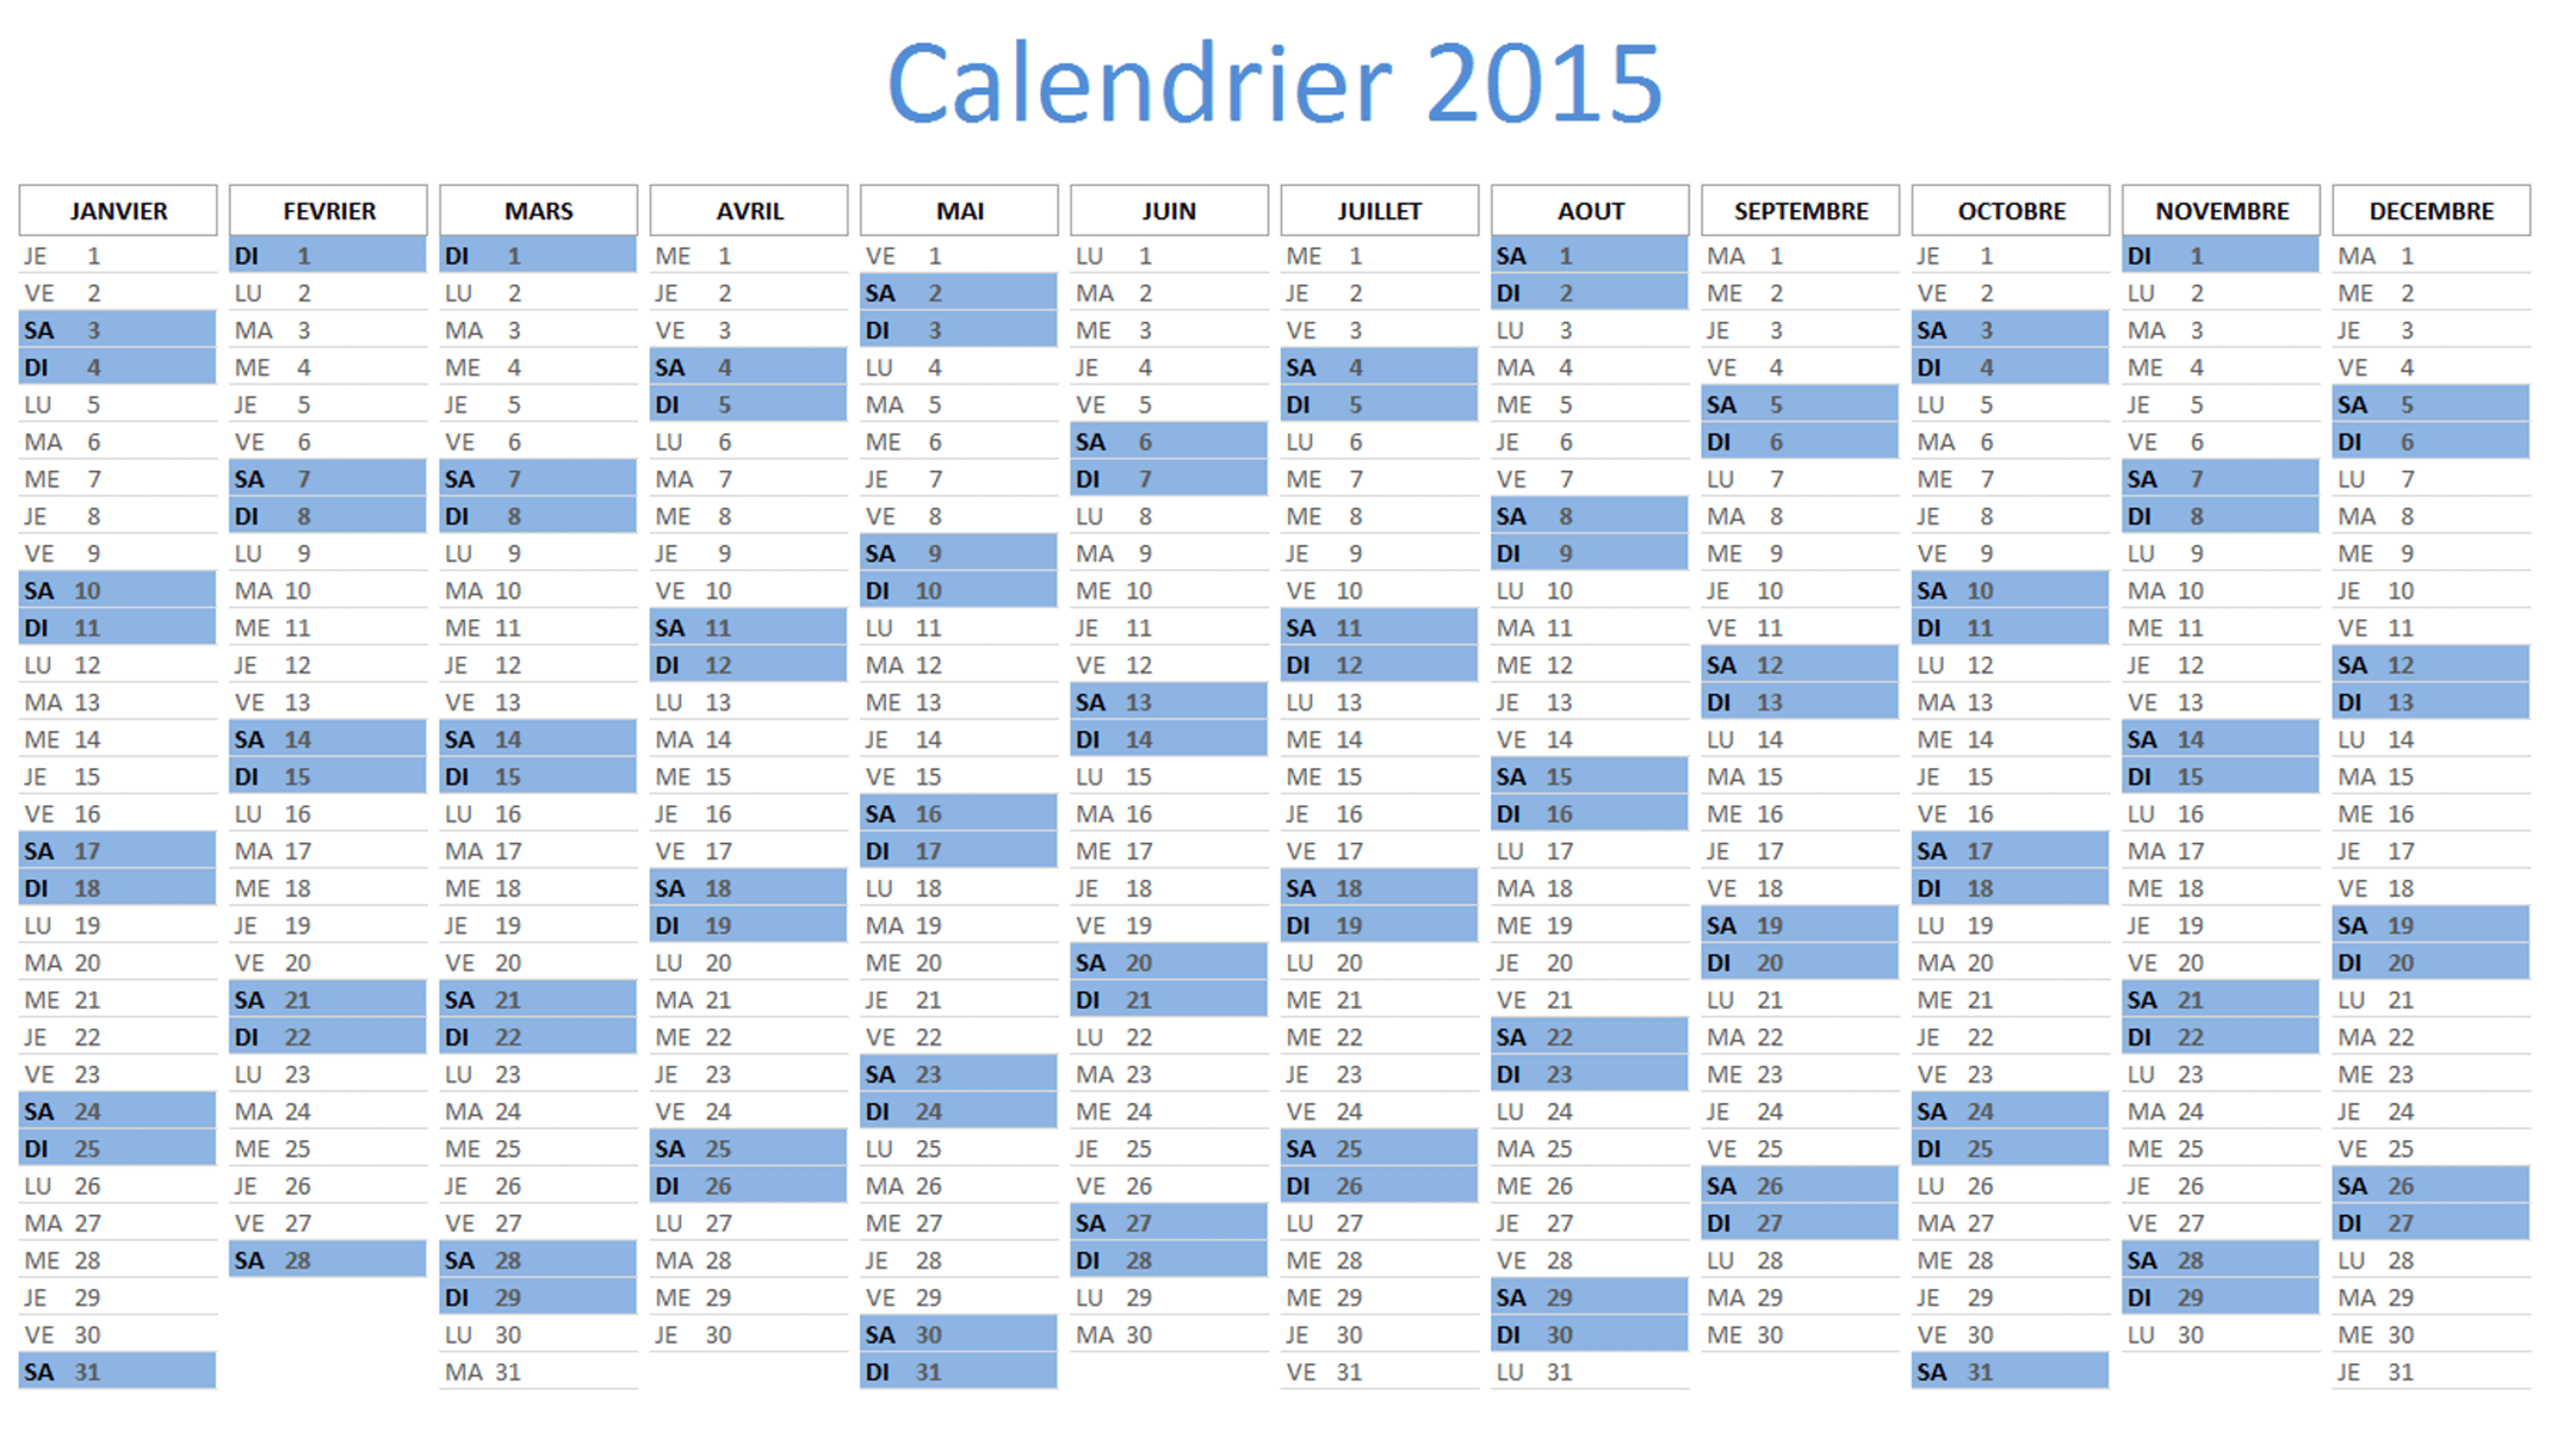 calendrier 2015 excel t l charger gratuitement. Black Bedroom Furniture Sets. Home Design Ideas